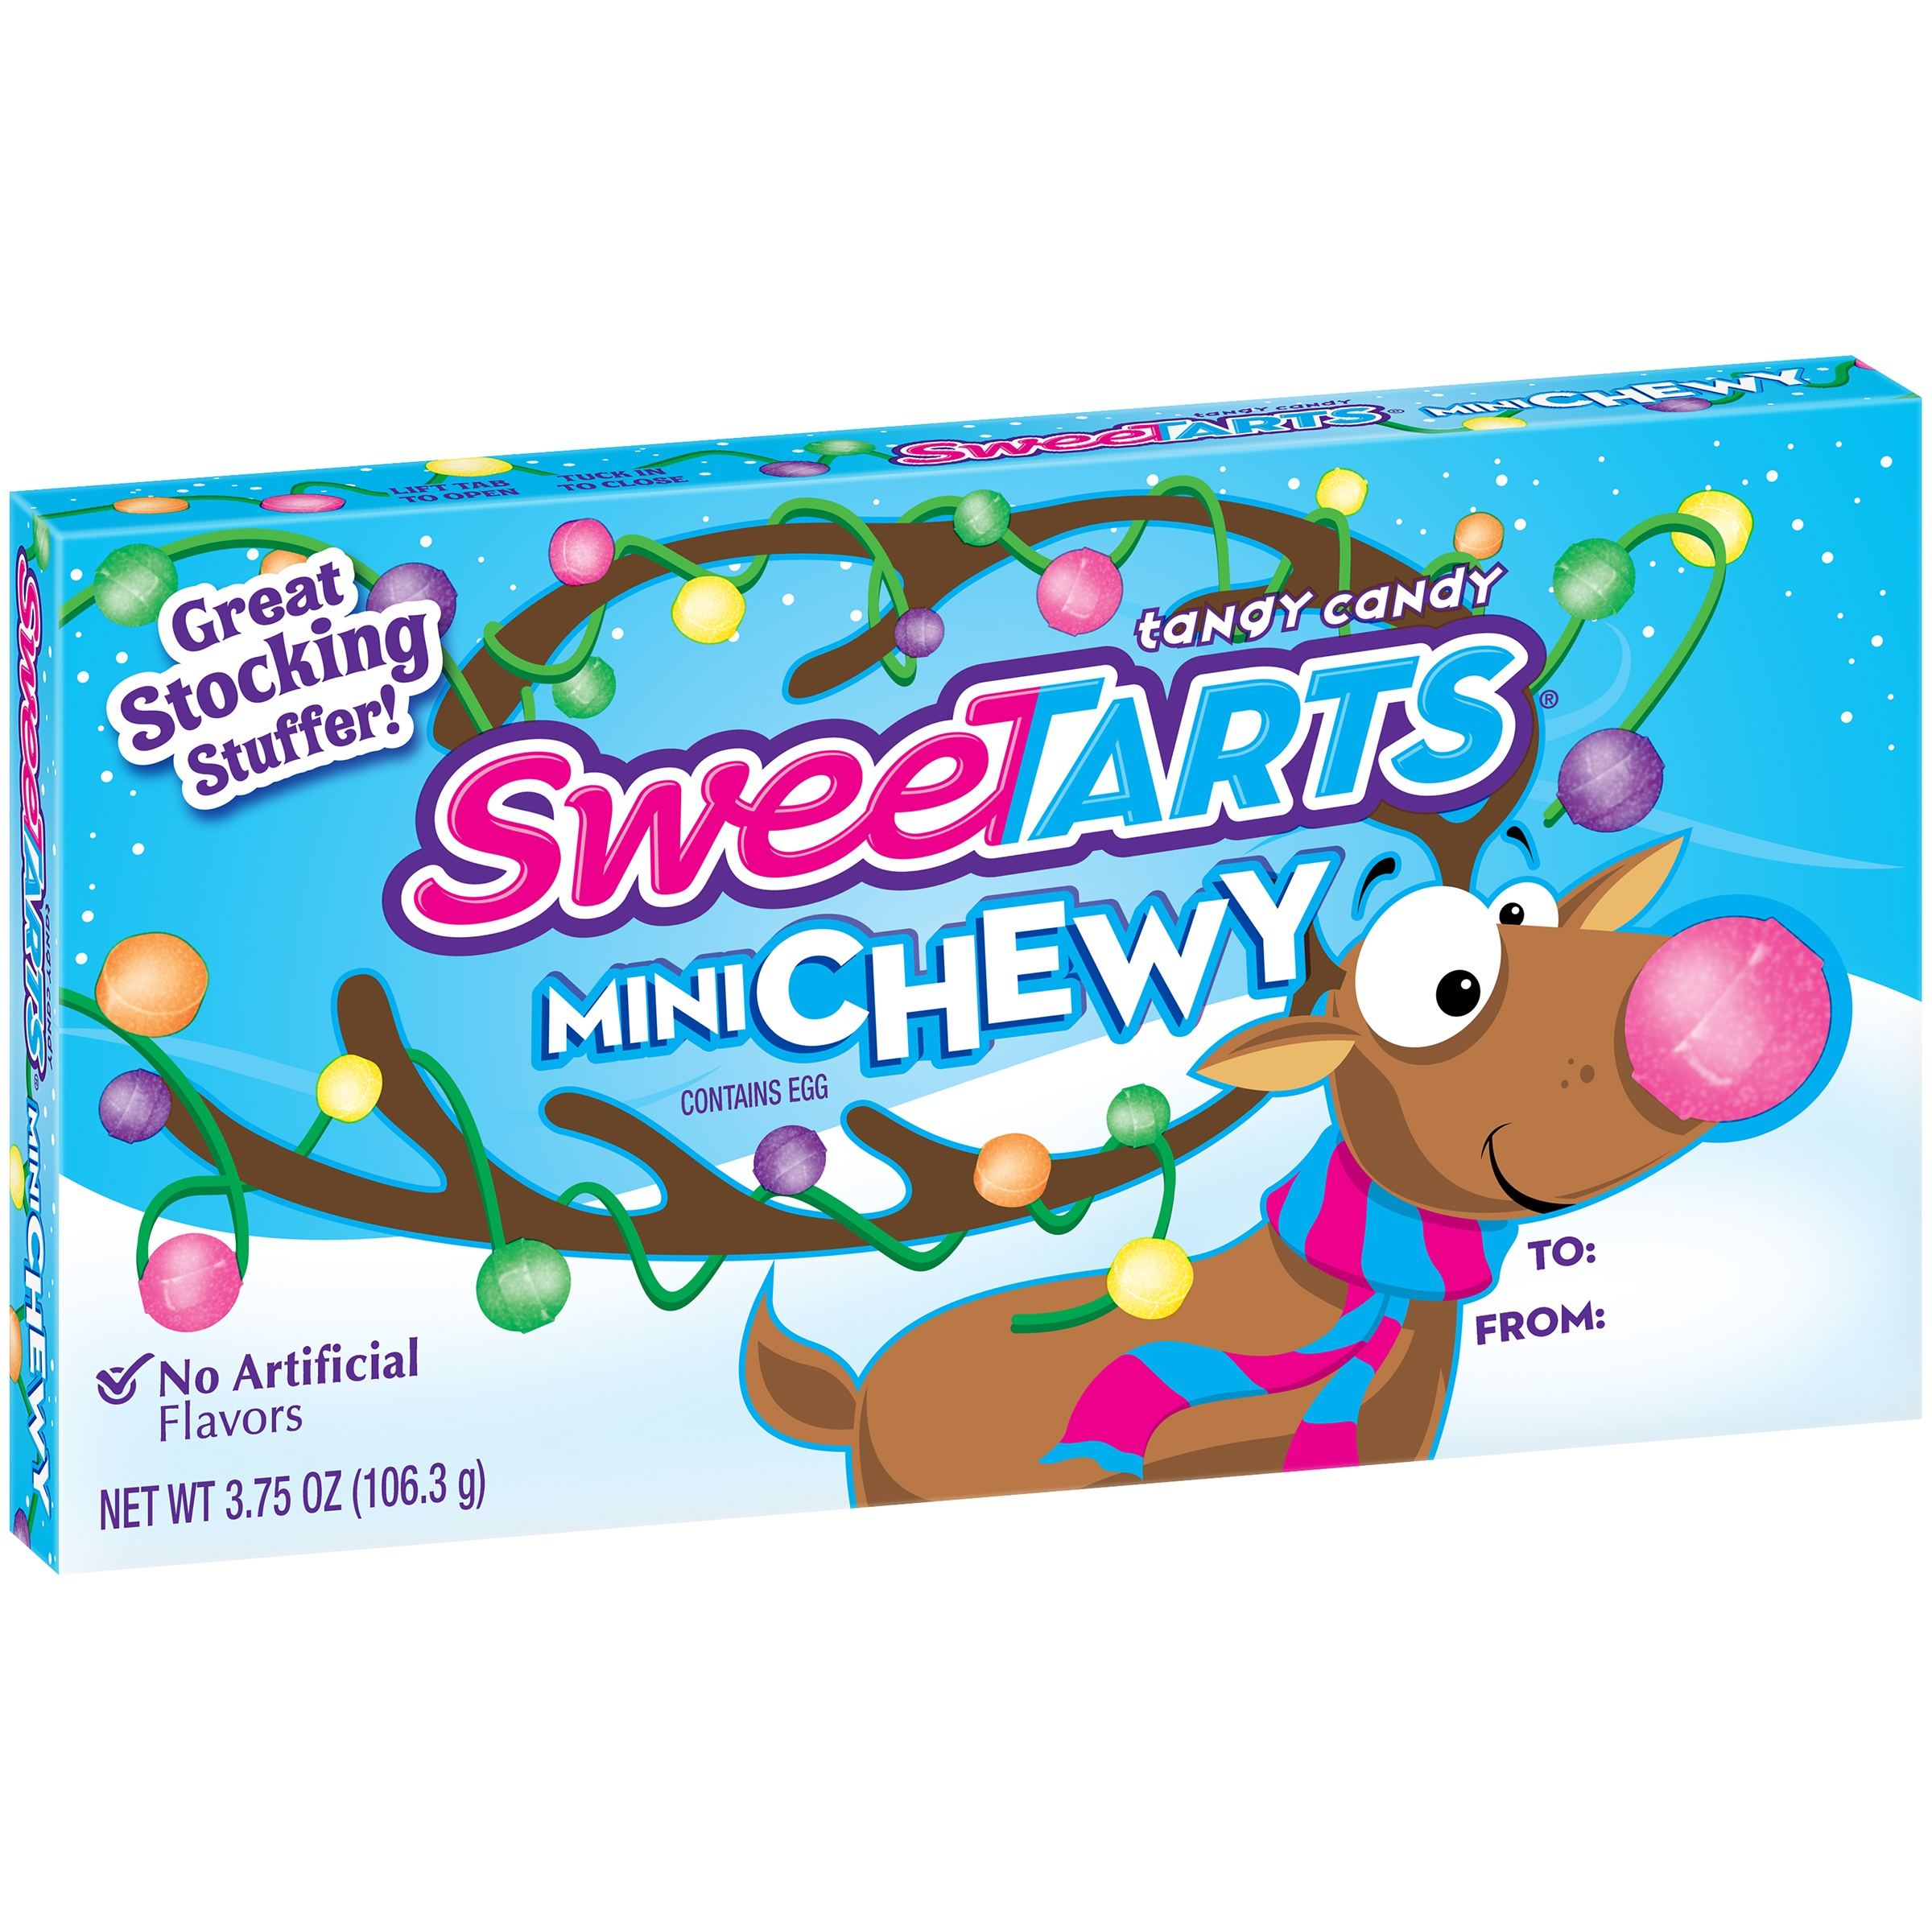 SweeTarts, Holiday Mini Chewy Candy, 3.75 Oz